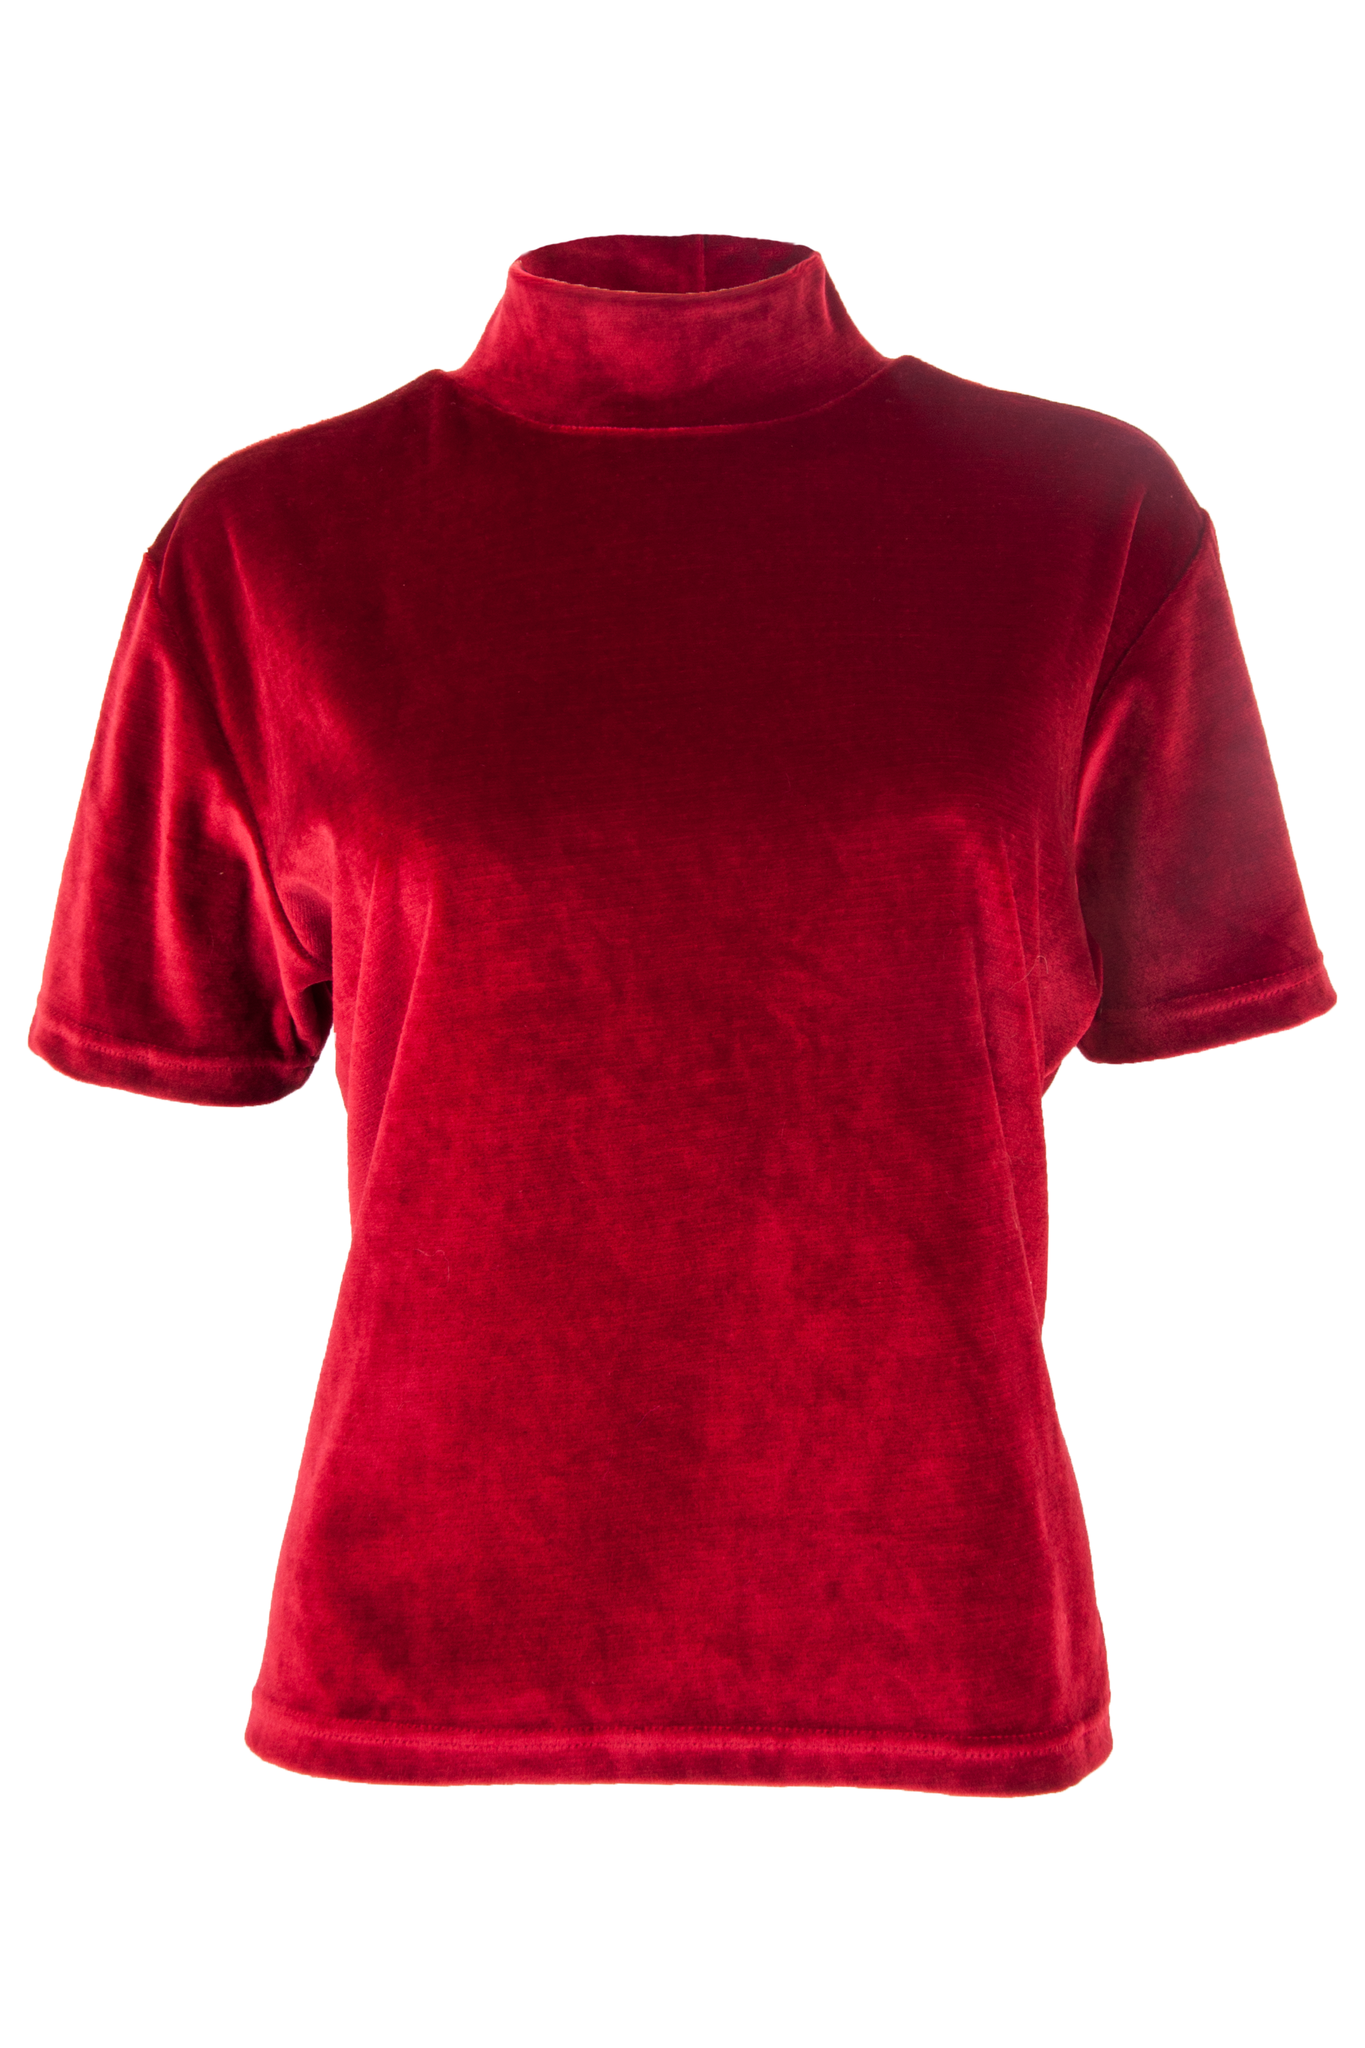 red velvet mock neck shirt